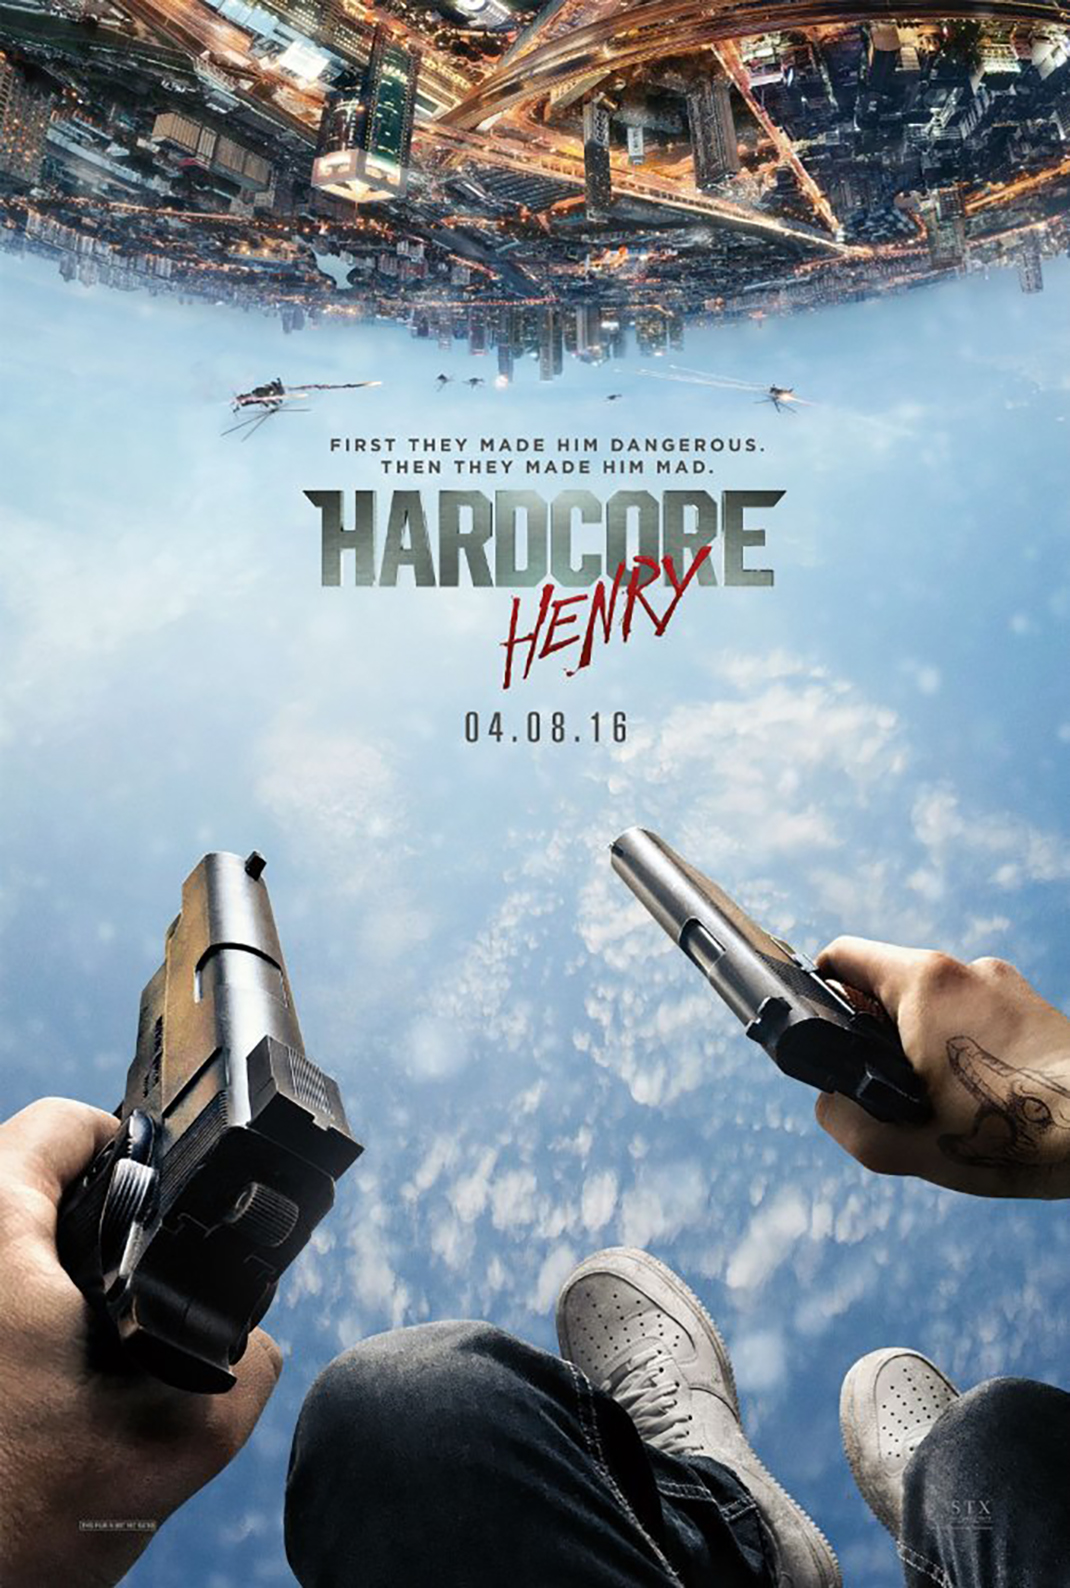 Harcore Henry1